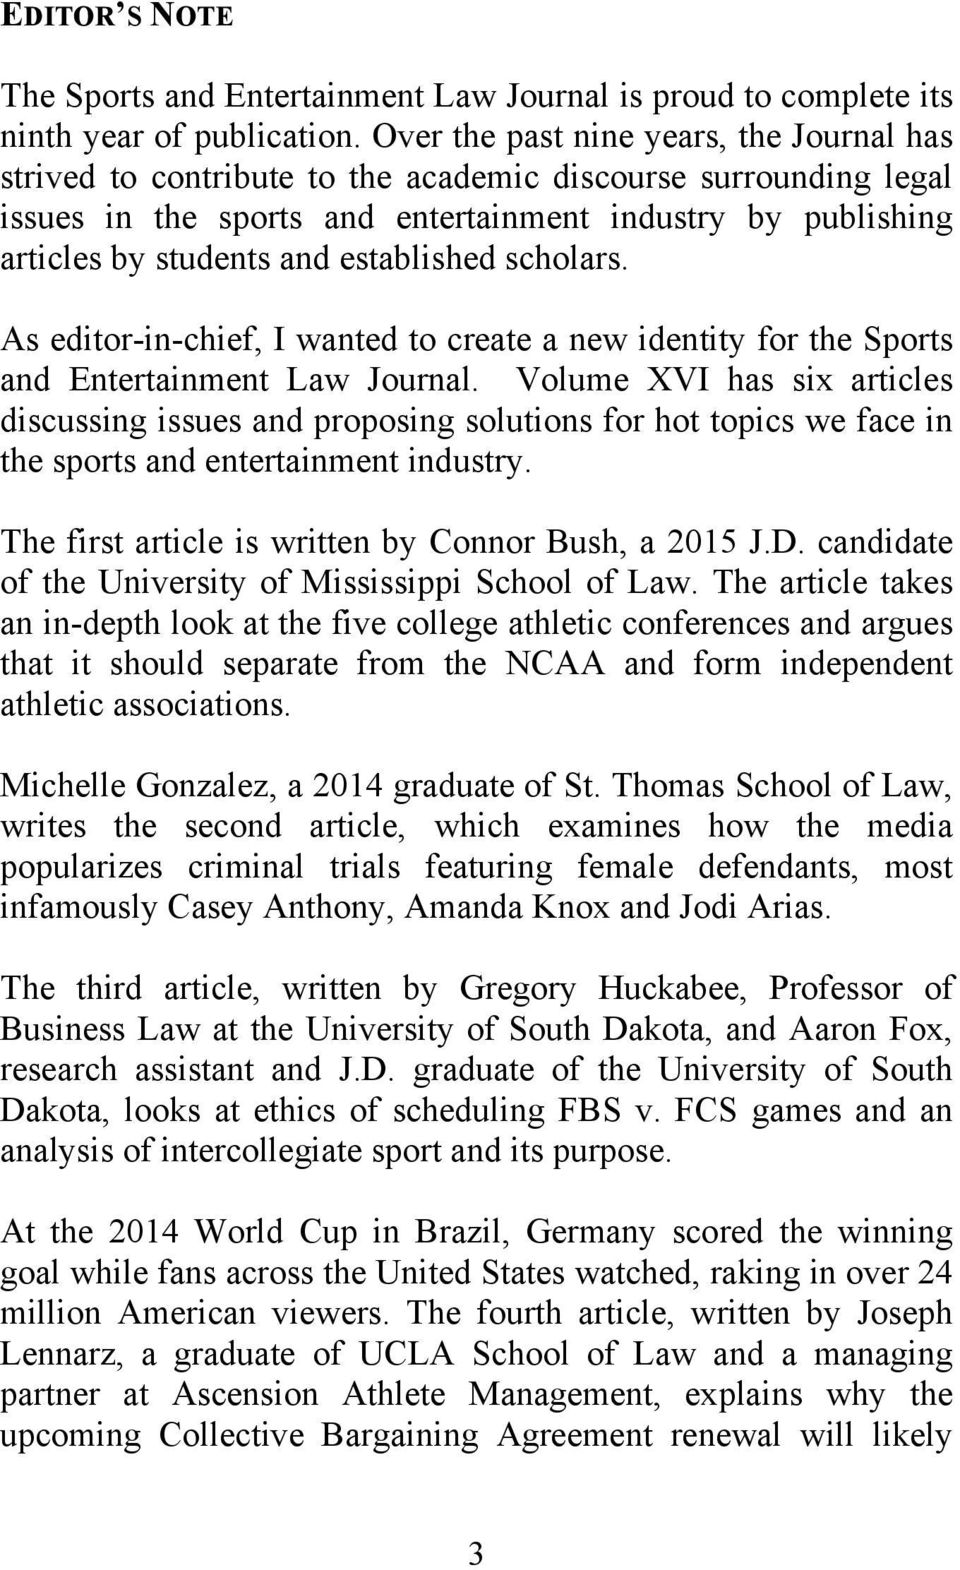 established scholars. As editor-in-chief, I wanted to create a new identity for the Sports and Entertainment Law Journal.